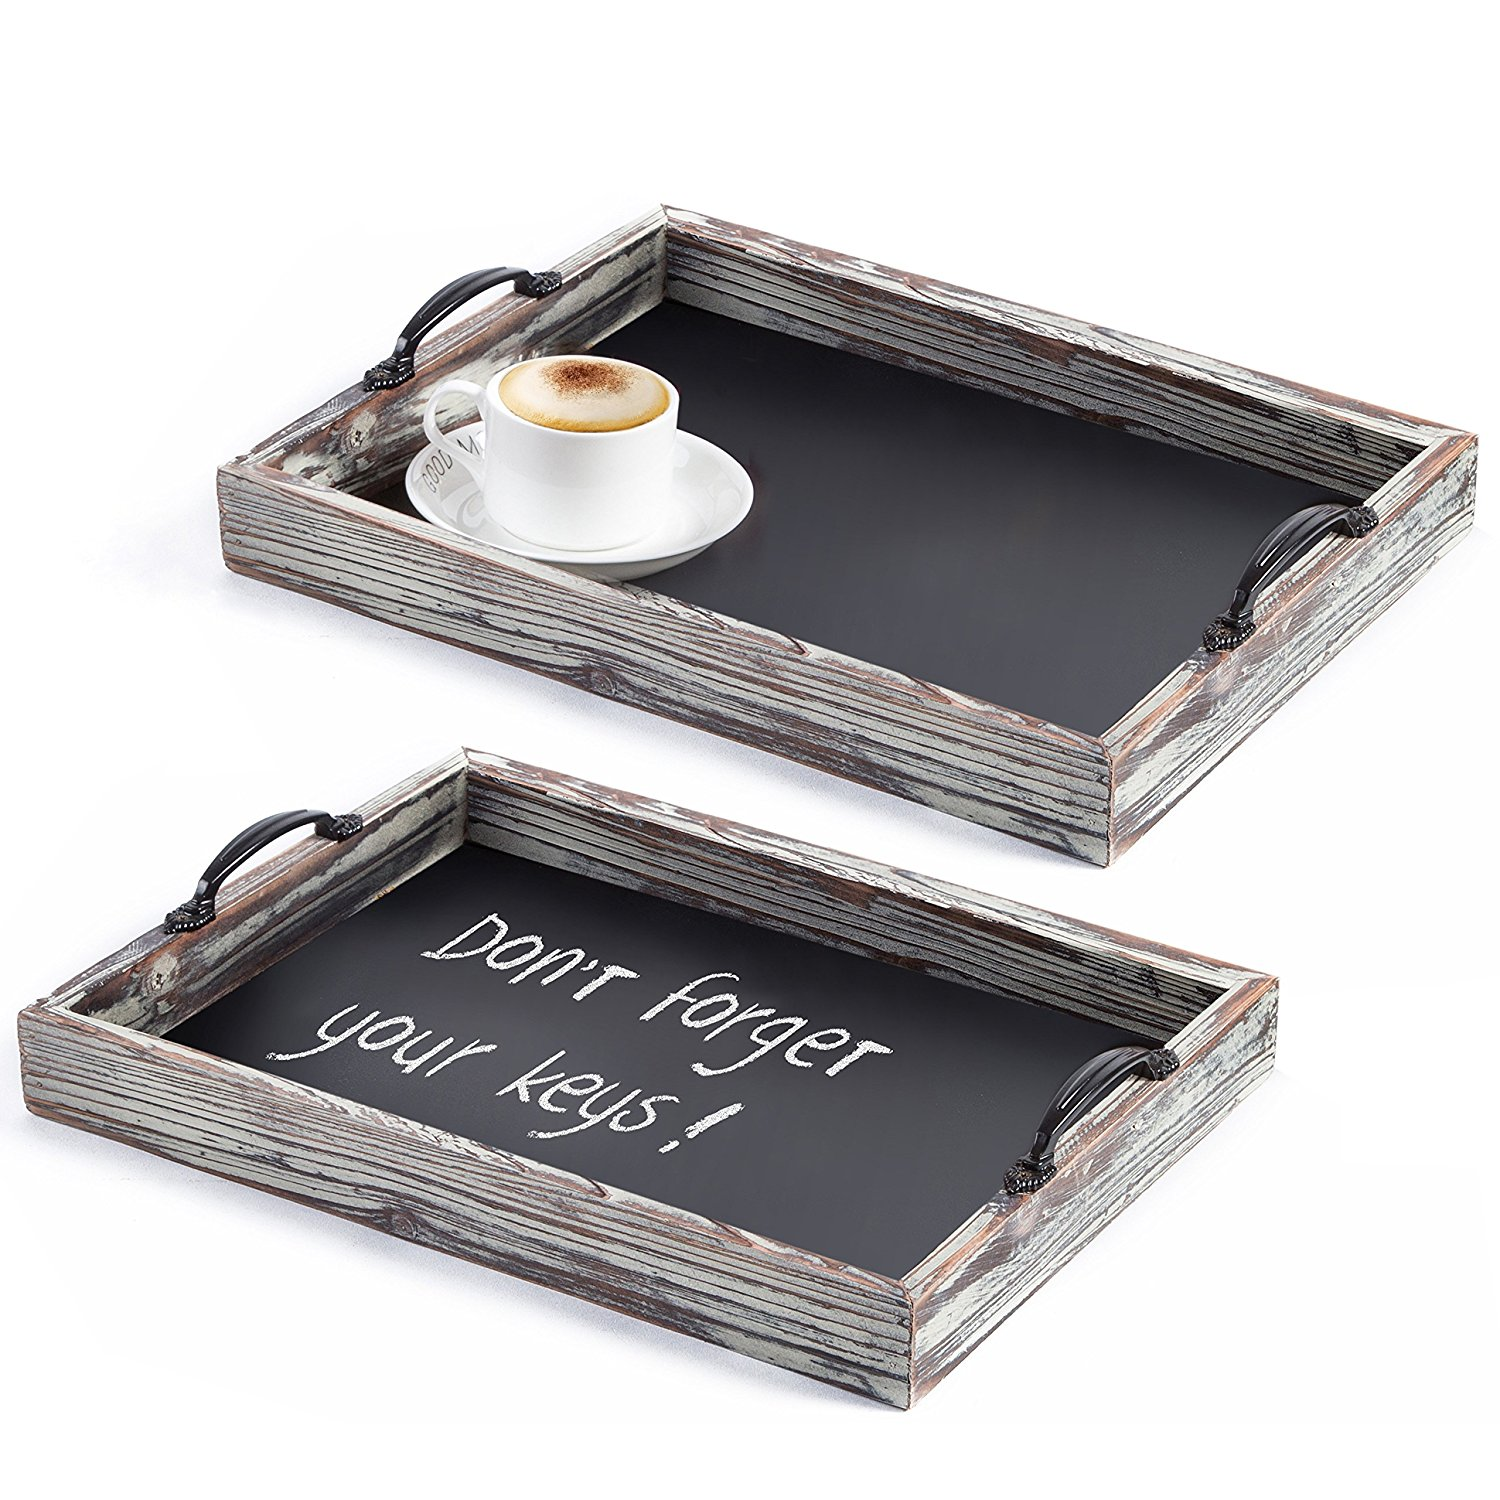 Rustic Style Wood Chalkboard Surface Nesting Breakfast Serving Trays with Decorative Handles, Set of 2